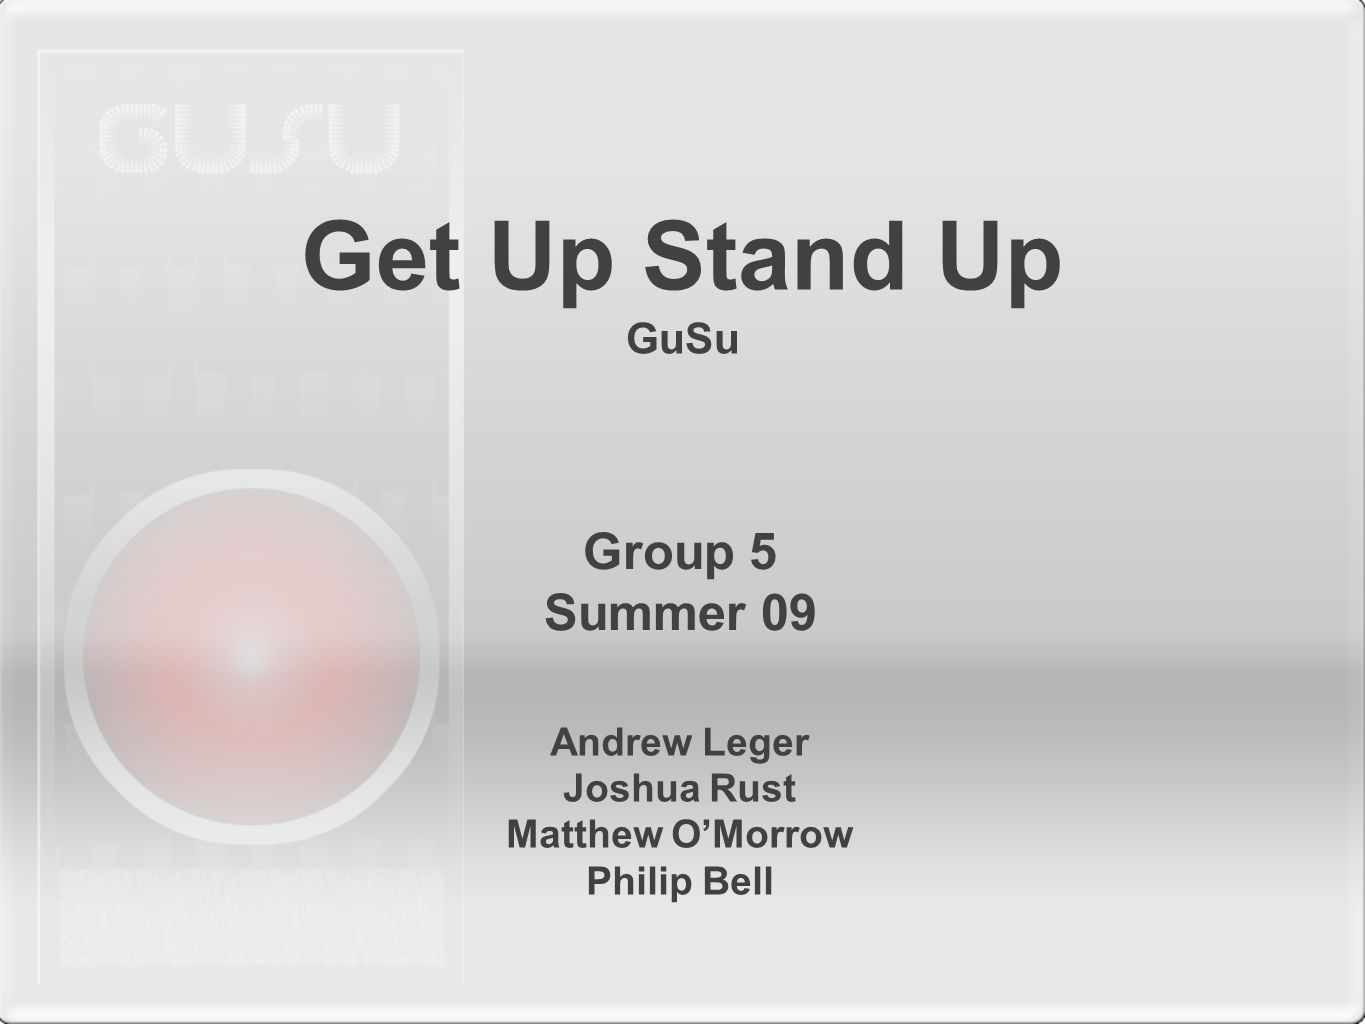 Get Up Stand Up GuSu Andrew Leger Joshua Rust Matthew O'Morrow Philip Bell Group 5 Summer 09